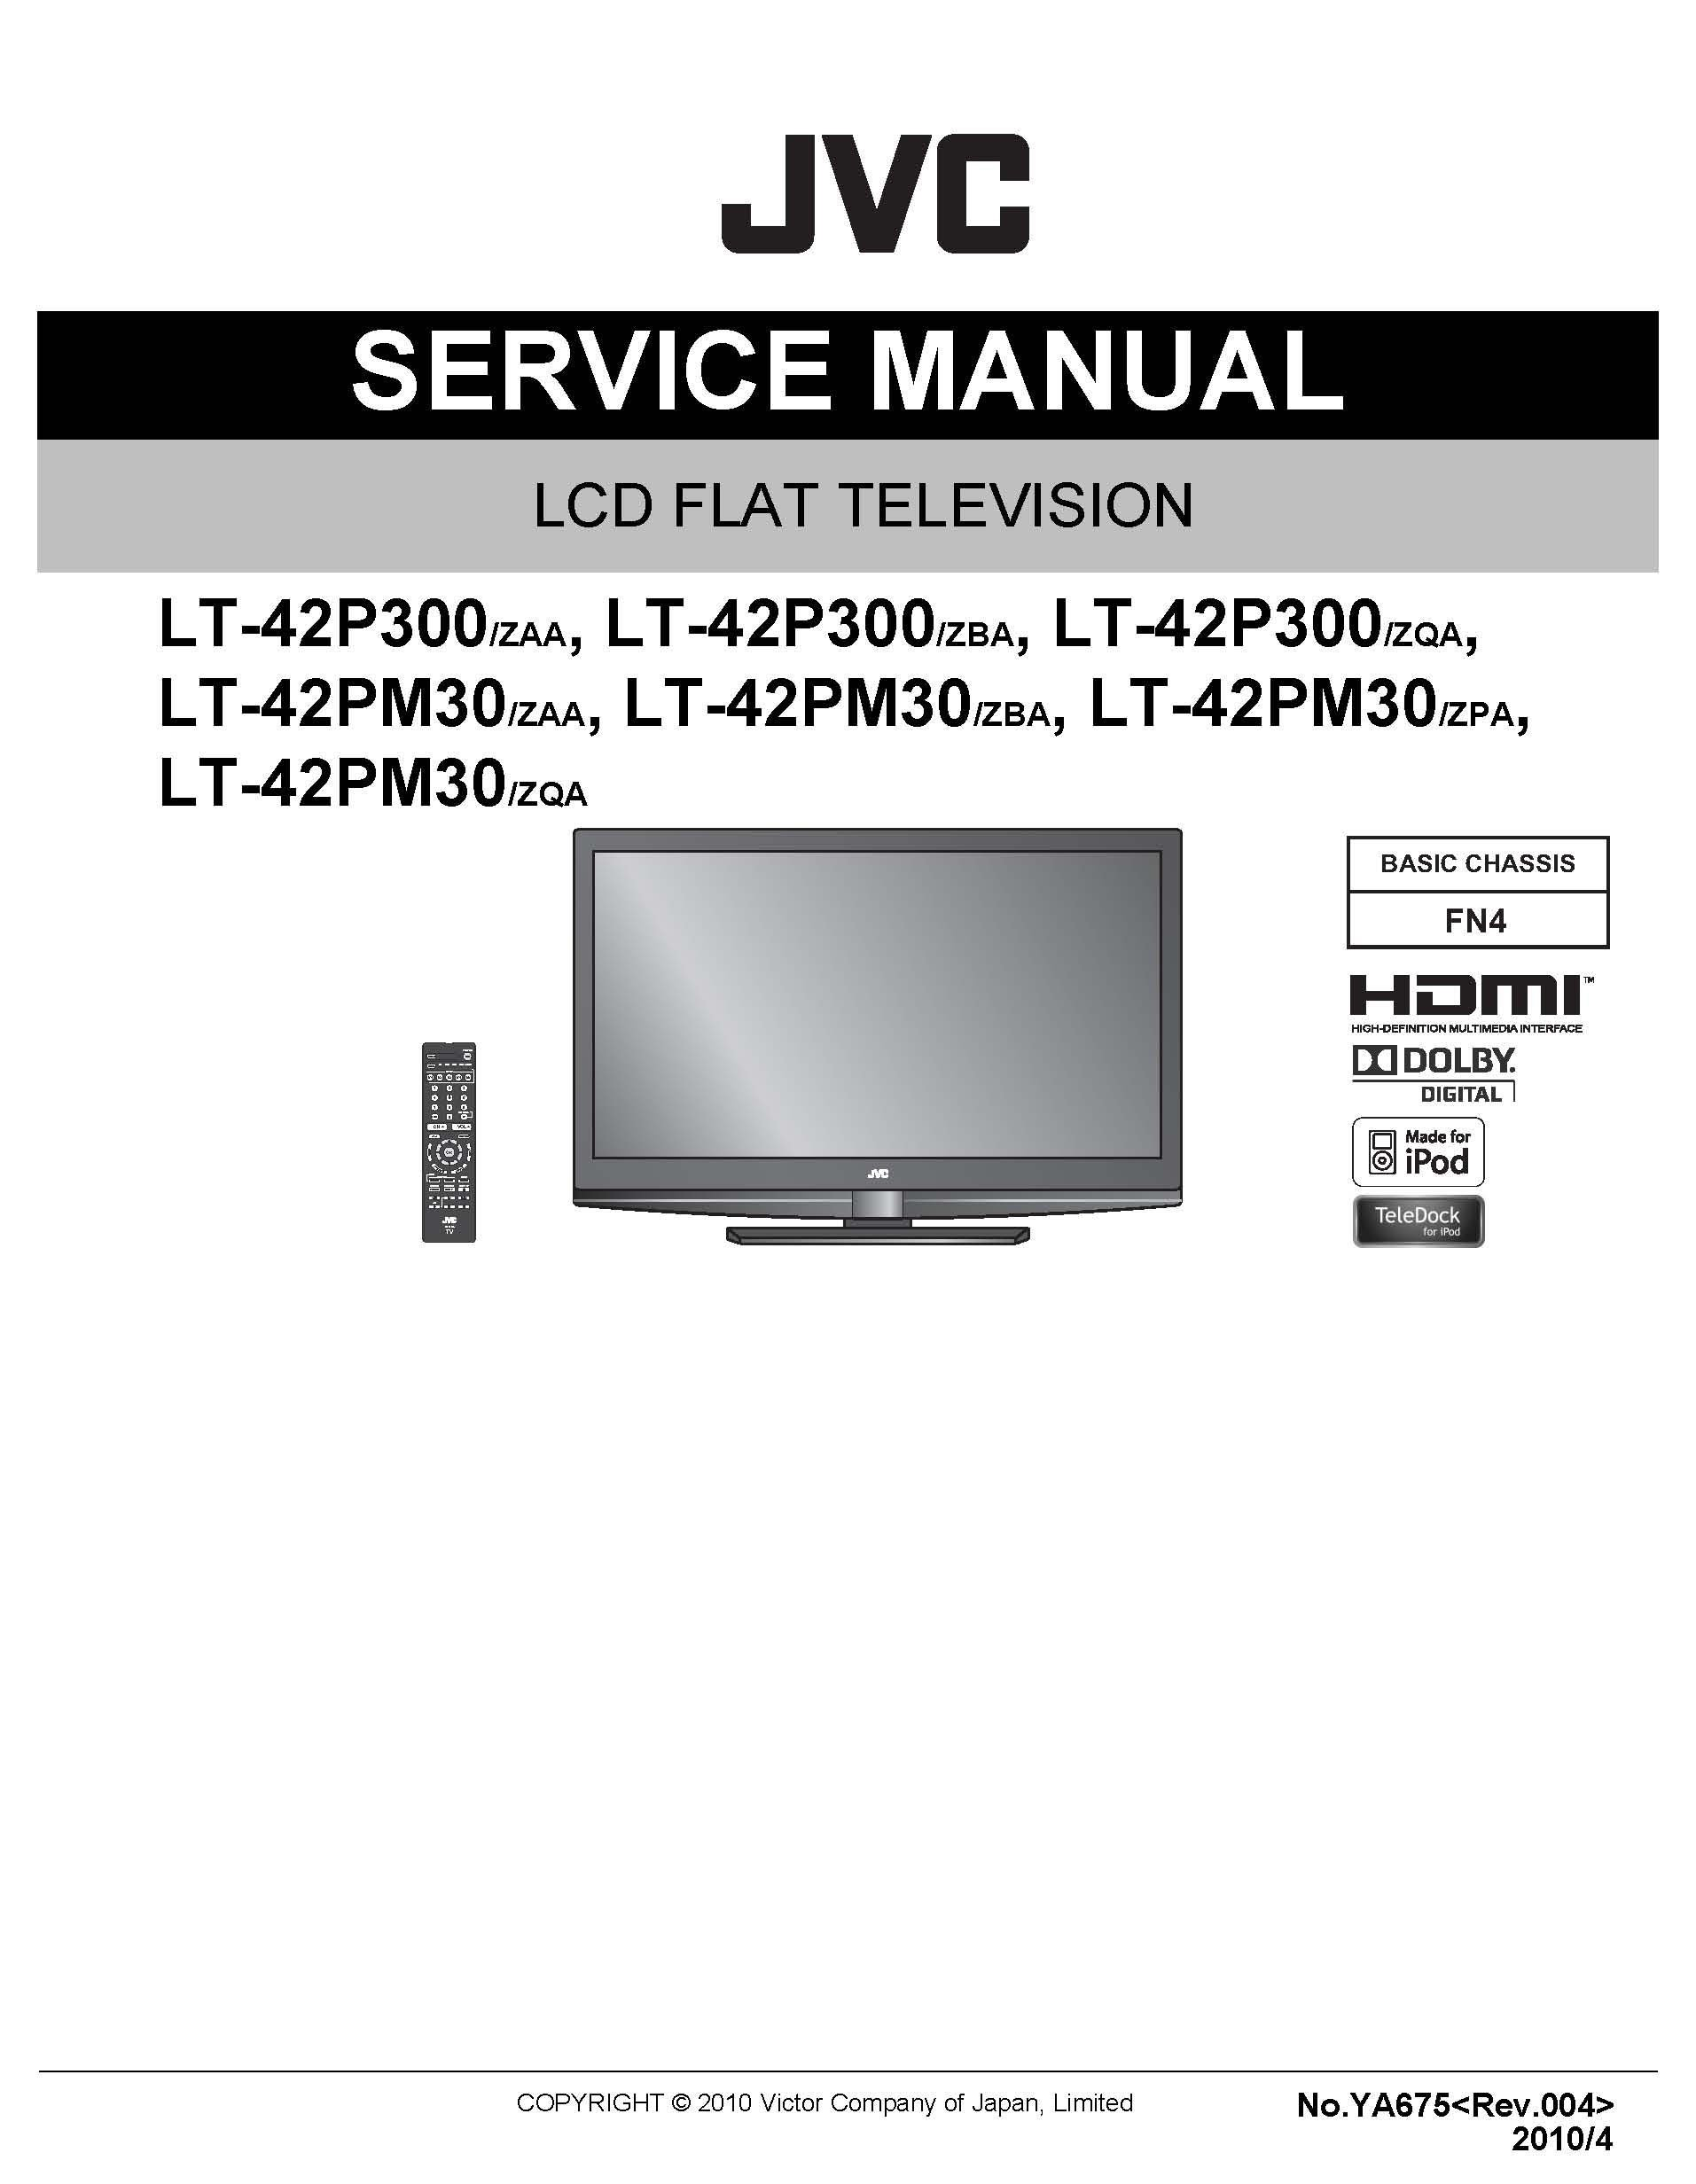 Jvc service manuals free download ebook pdf file for free from our array jvc lt 42pm30 service manual jvc amazon com books rh amazon fandeluxe Images